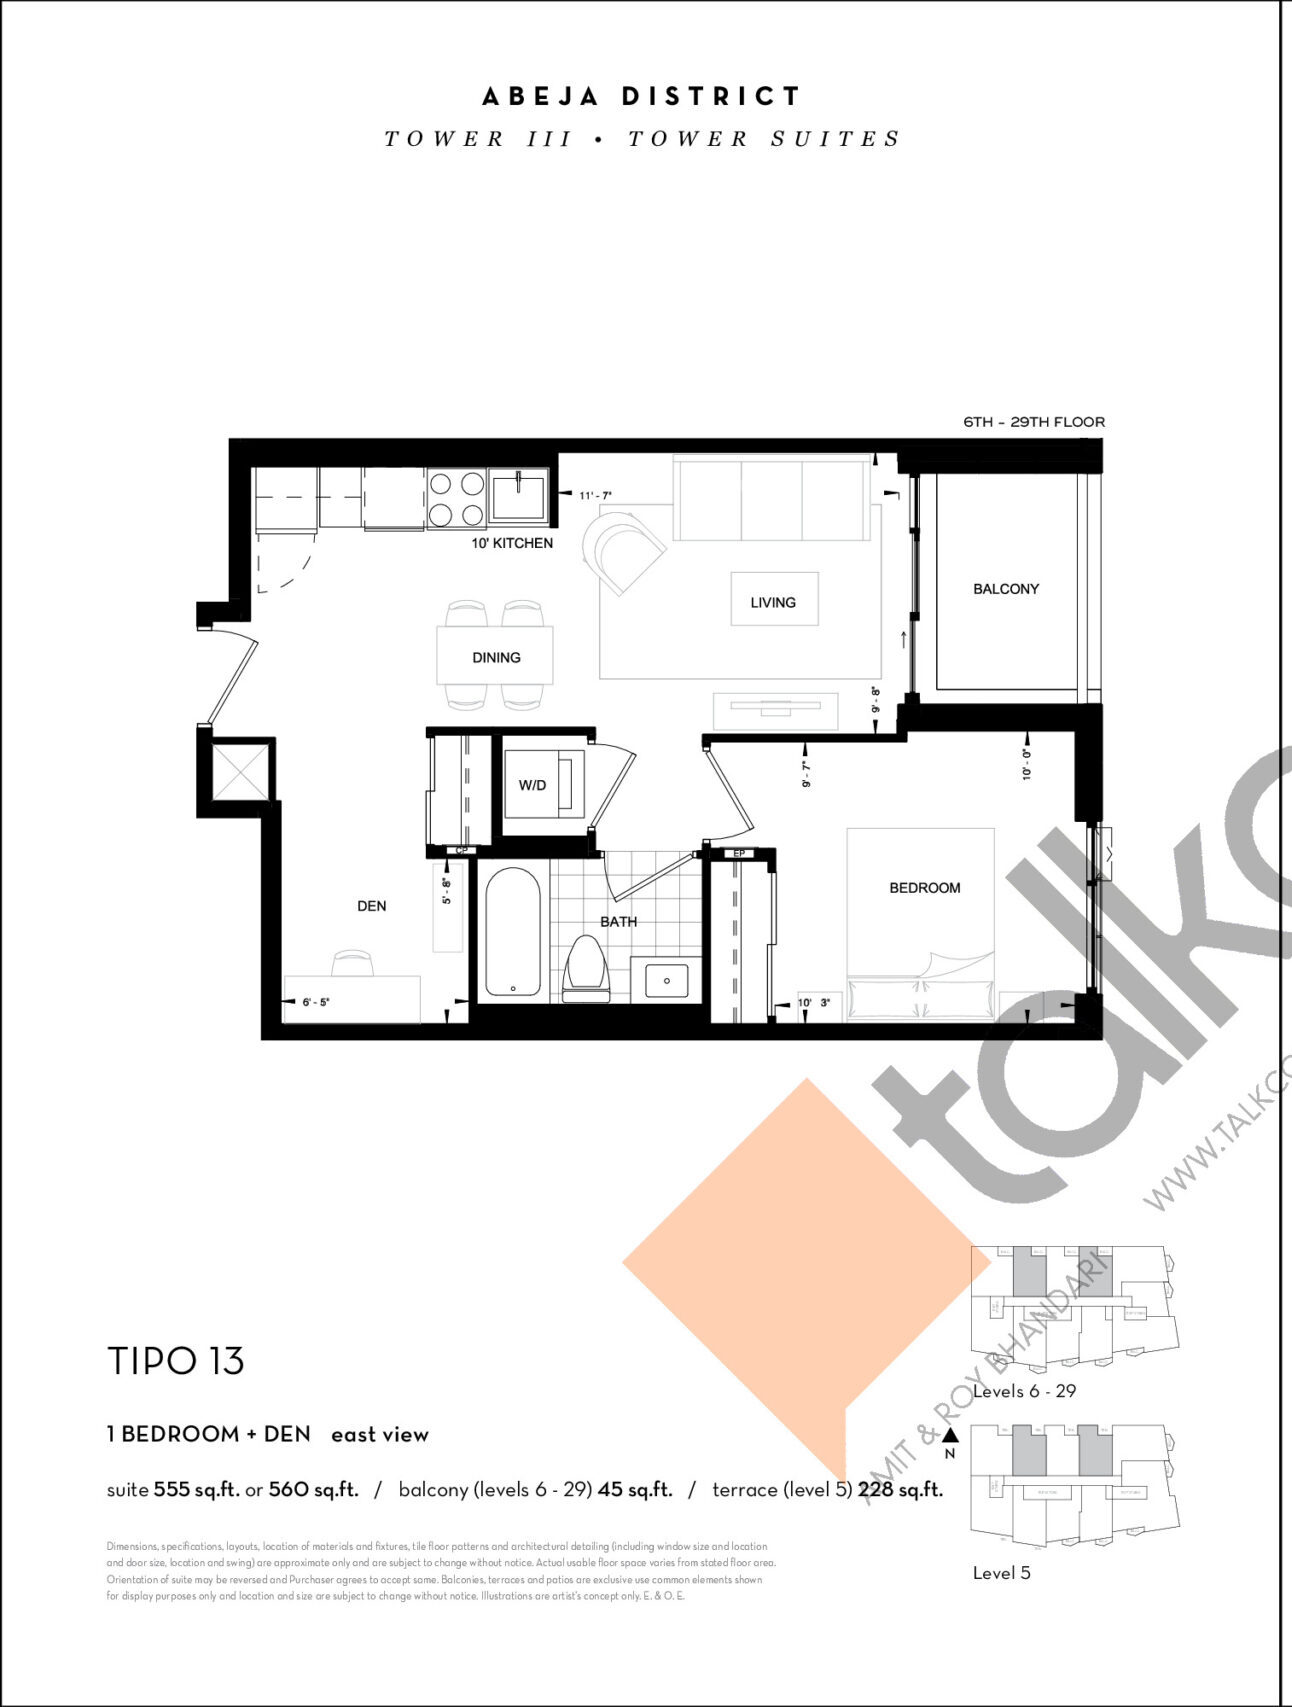 TIPO 13 Floor Plan at Abeja District Condos Tower 3 - 560 sq.ft